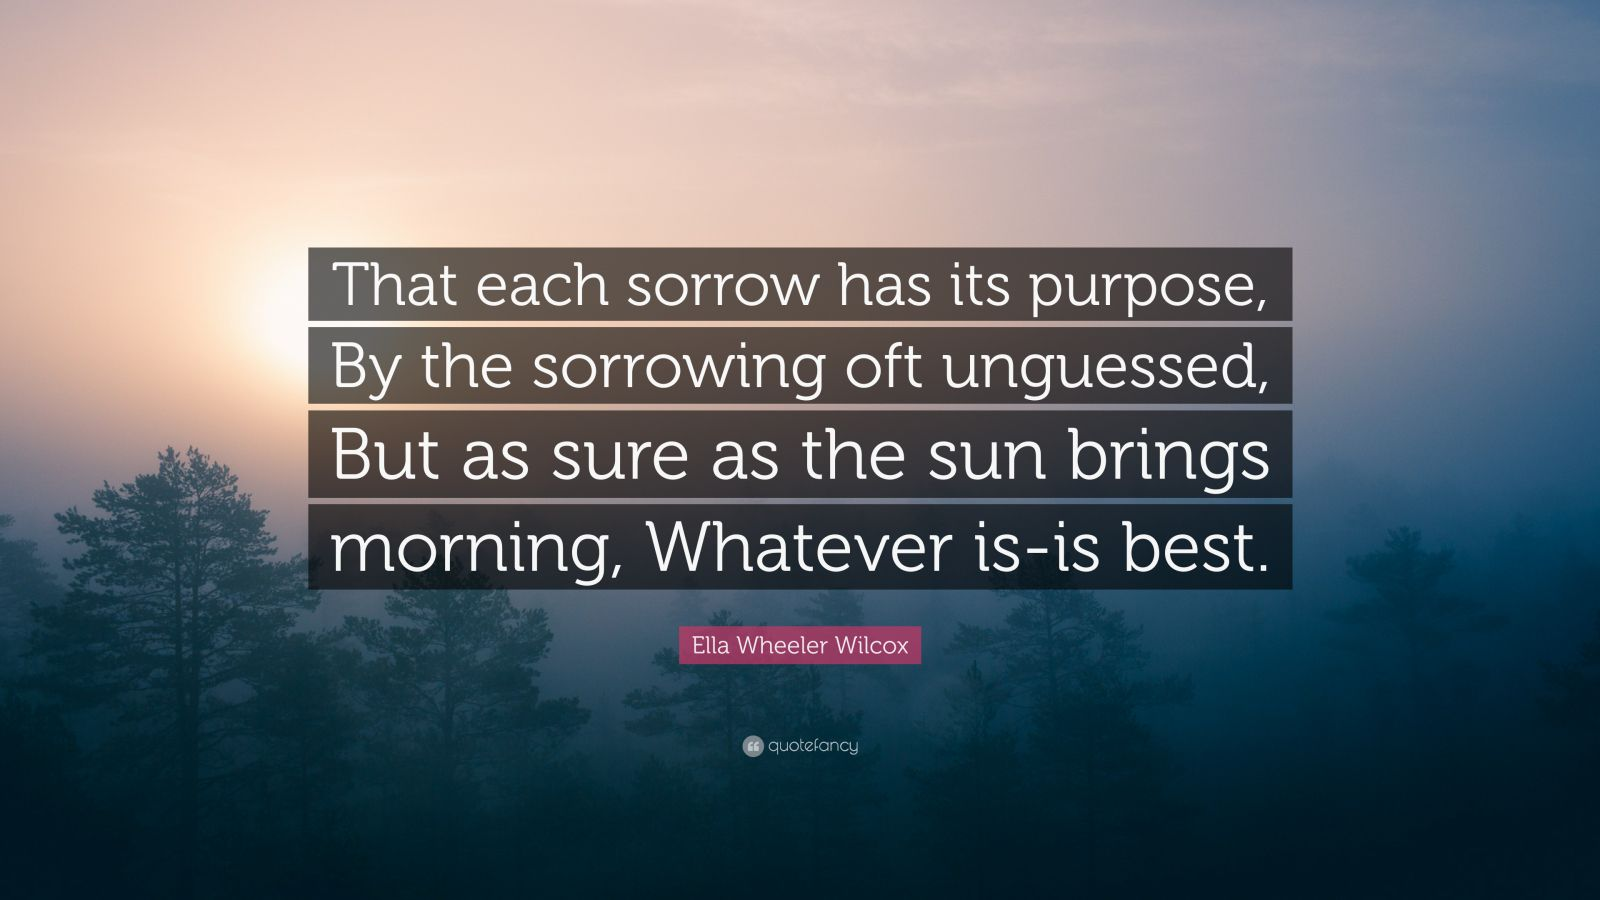 """Ella Wheeler Wilcox Quote: """"That each sorrow has its purpose, By the sorrowing oft unguessed, But as sure as the sun brings morning, Whatever is-is best."""""""